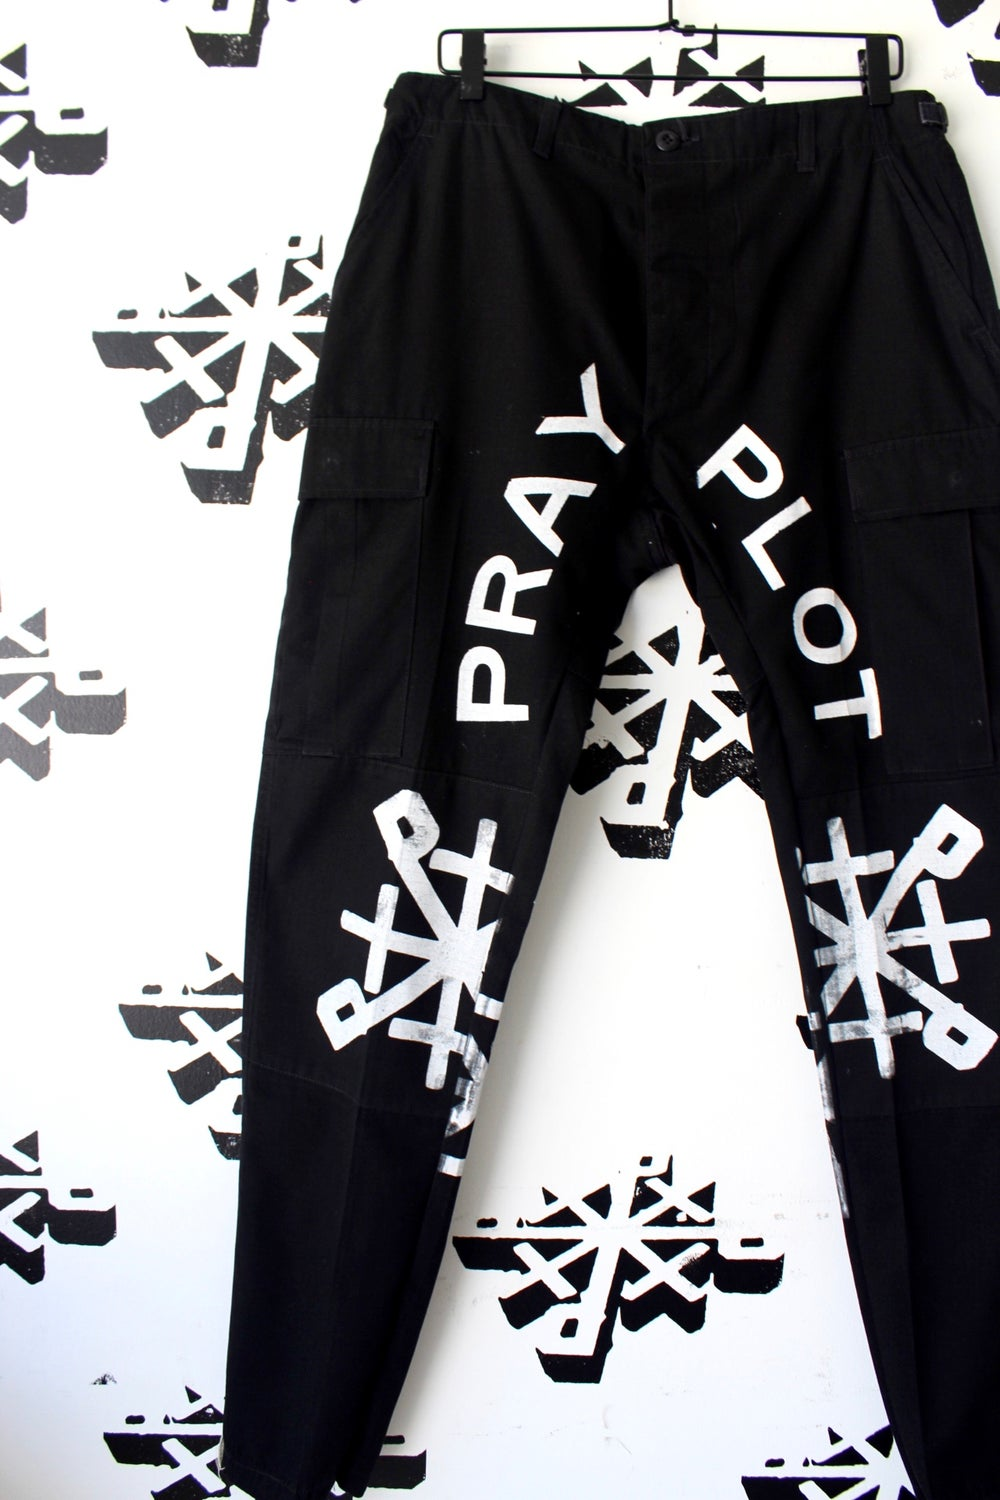 steppers cargo pants in Blk/wht